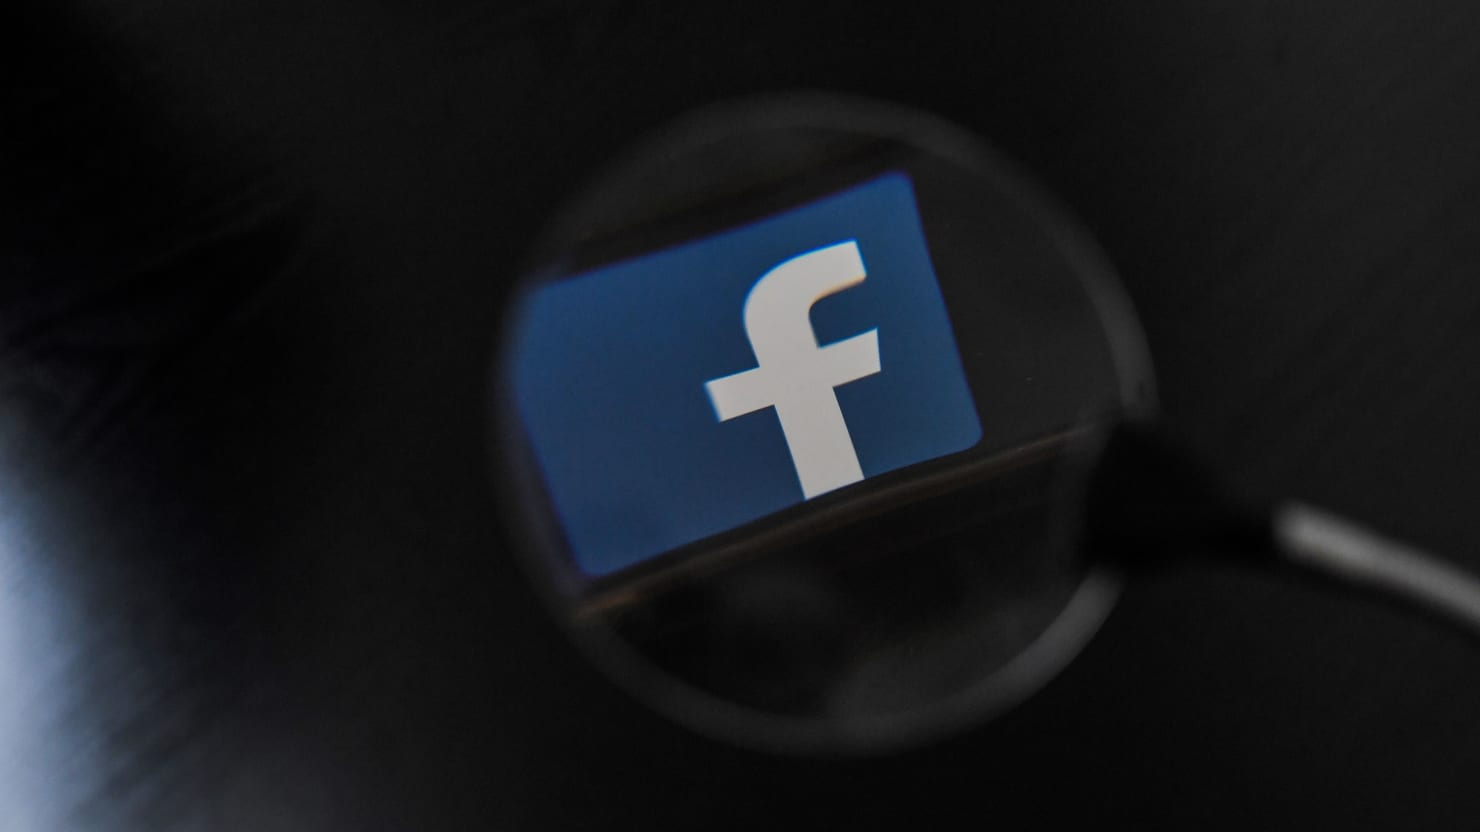 Senate Hearing on Facebook Crypto Project to Be Held Next Month